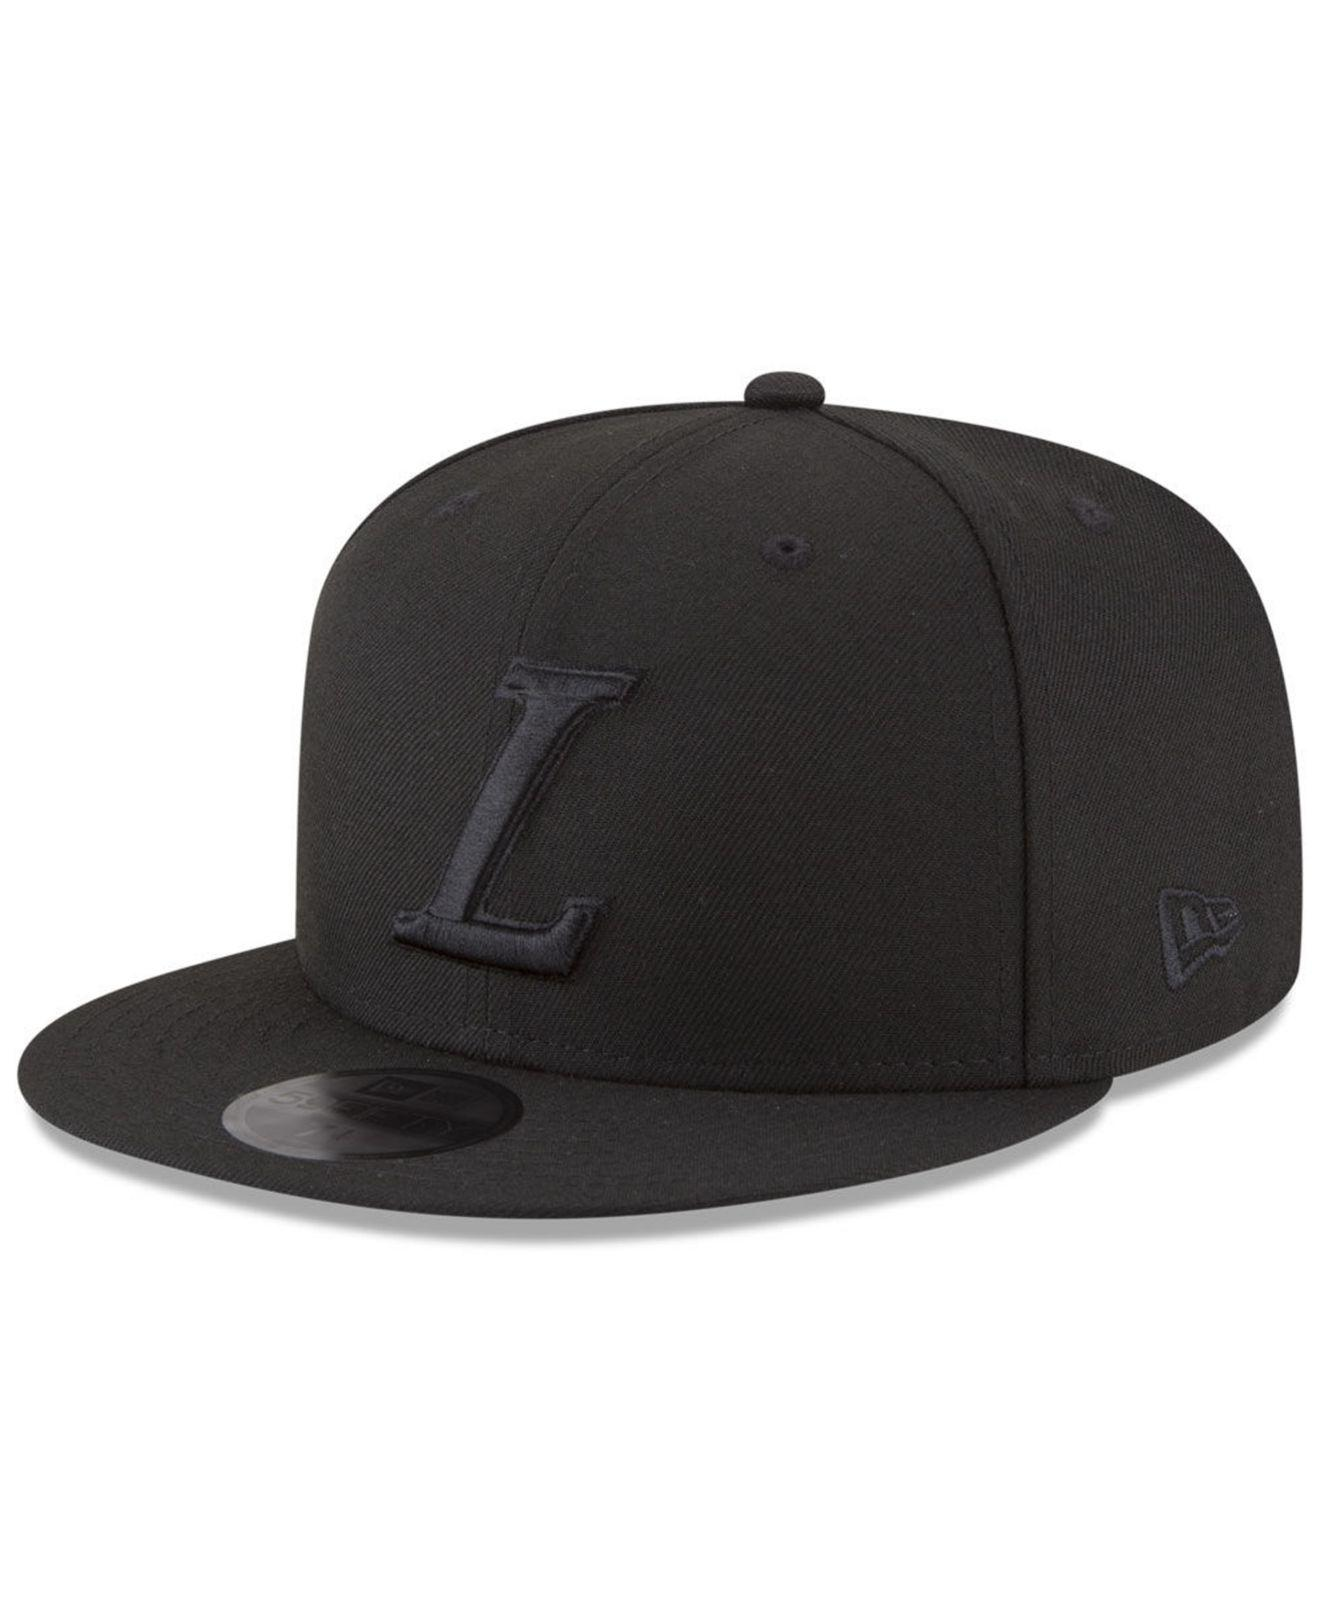 designer fashion 524cb 090fc ... new era nba jersey hook 9fifty snapback cap 0550e 050b3  coupon code  for lyst ktz los angeles lakers alpha triple black 59fifty fitted cap 370ae  a0715